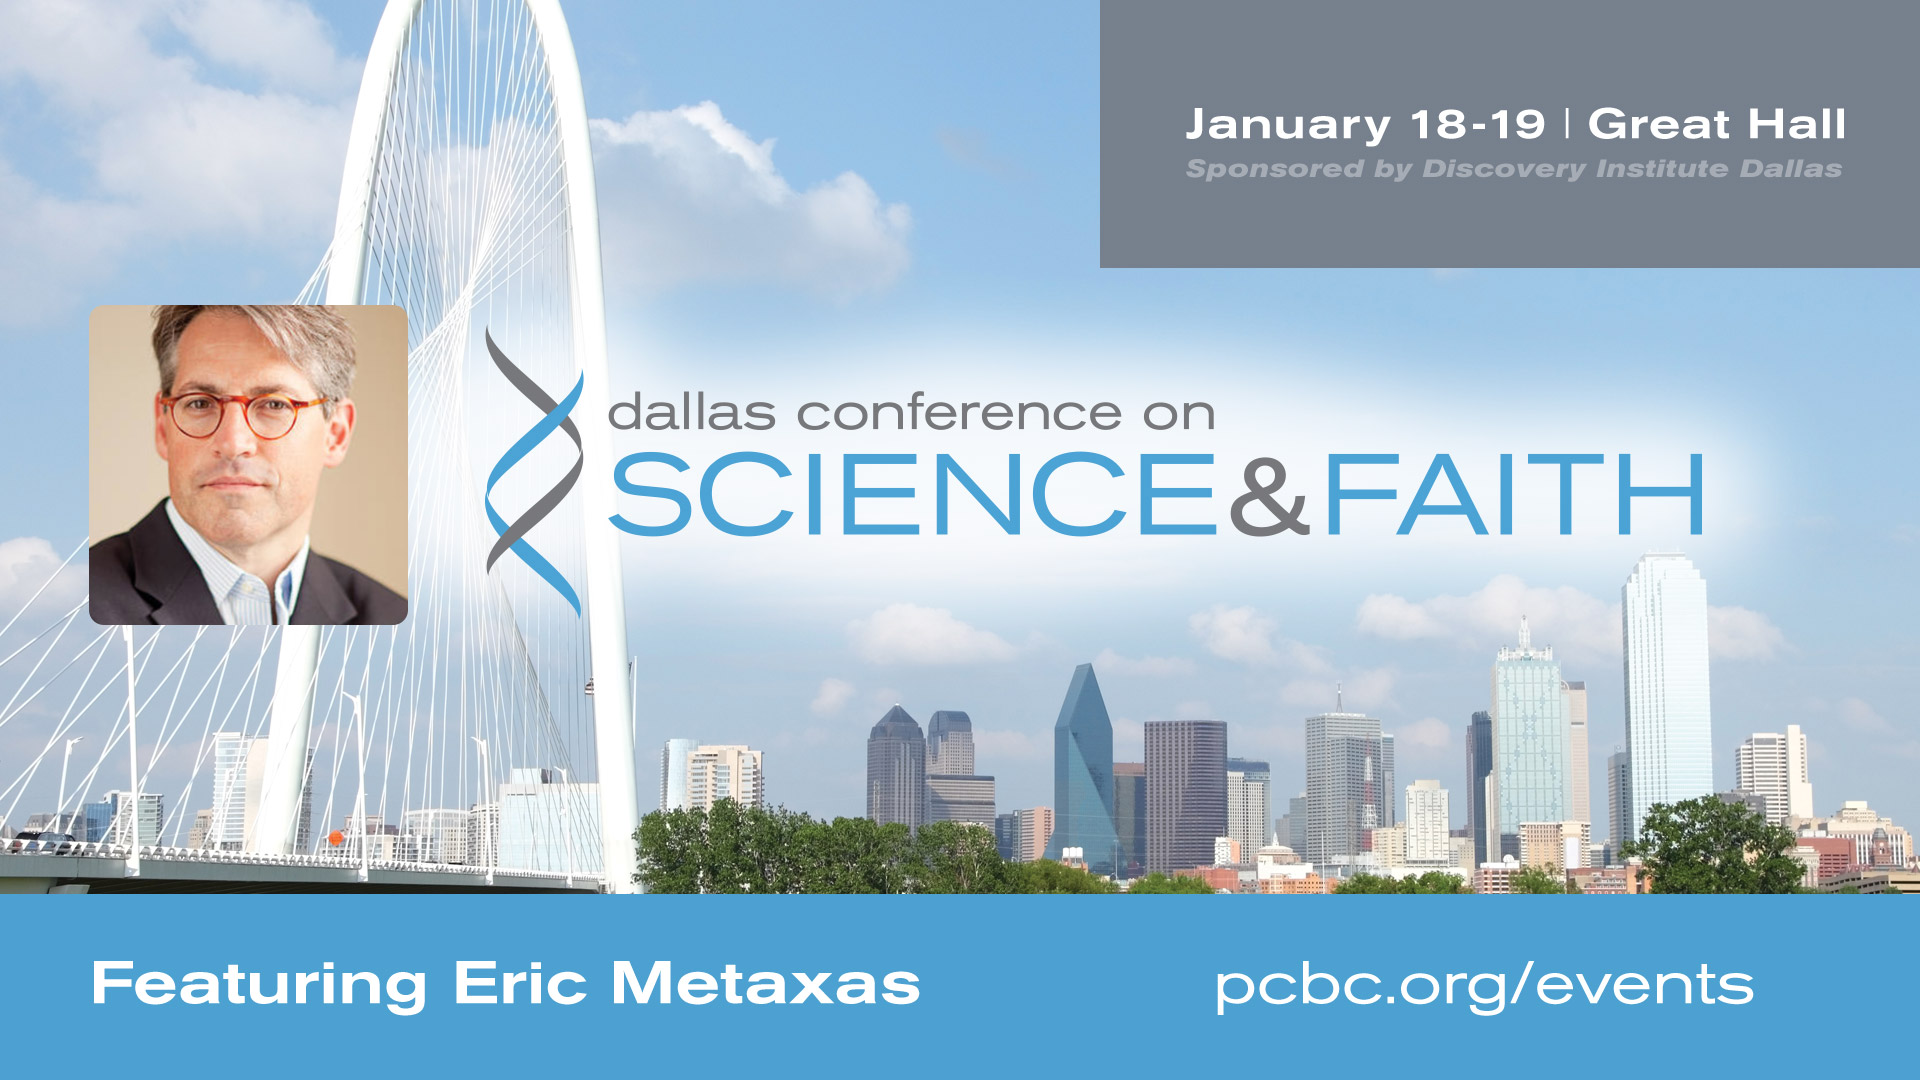 Dallas Conference on Science & Faith - Featuring Eric Metaxas